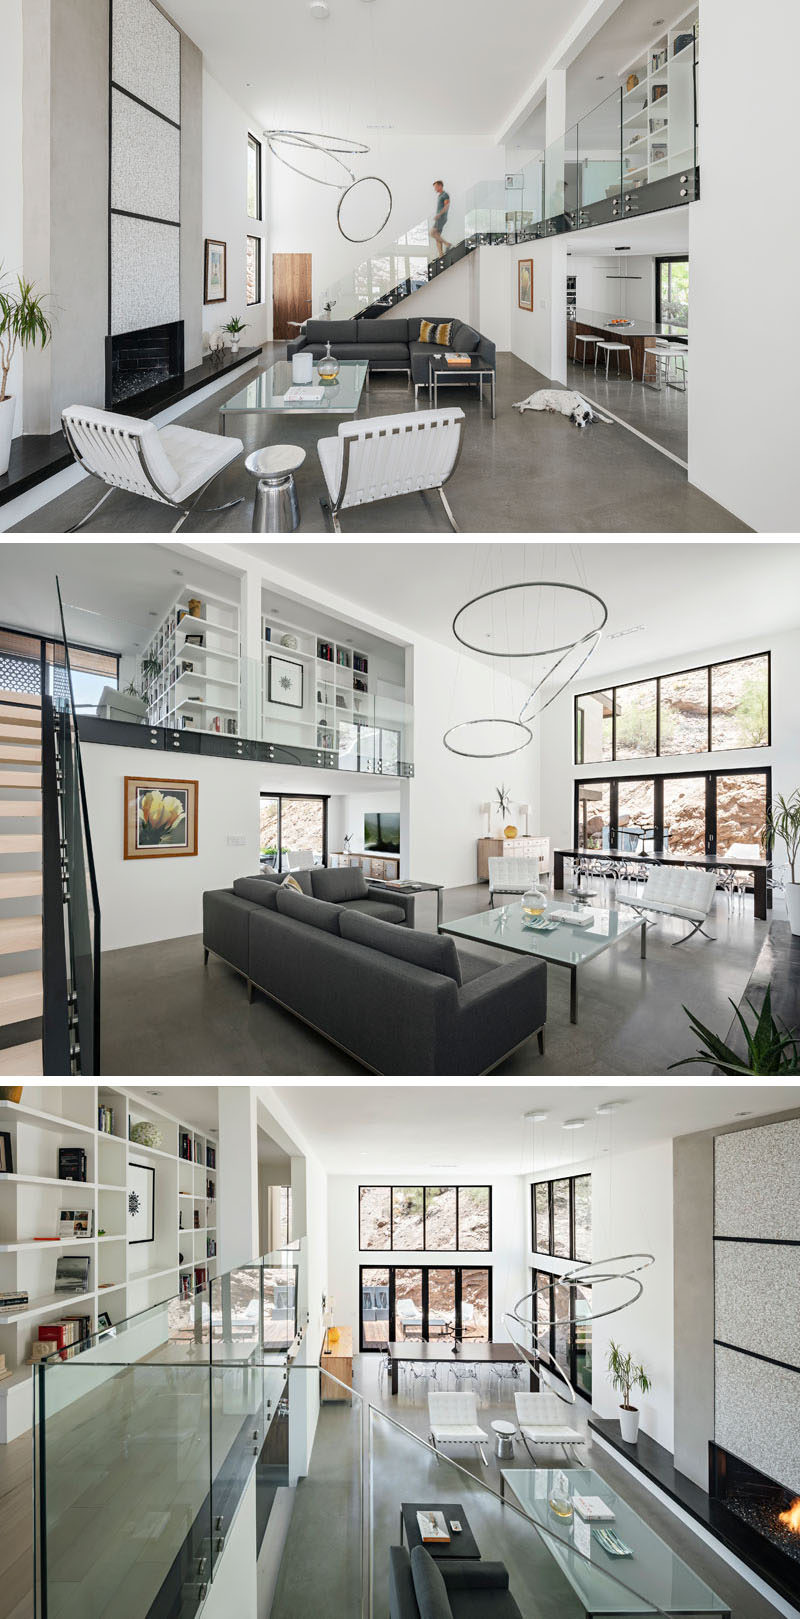 This modern family room features a double-height ceiling and plenty of windows for natural light and views of the red rocks. #FamilyRoom #ConcreteFloors #Windows